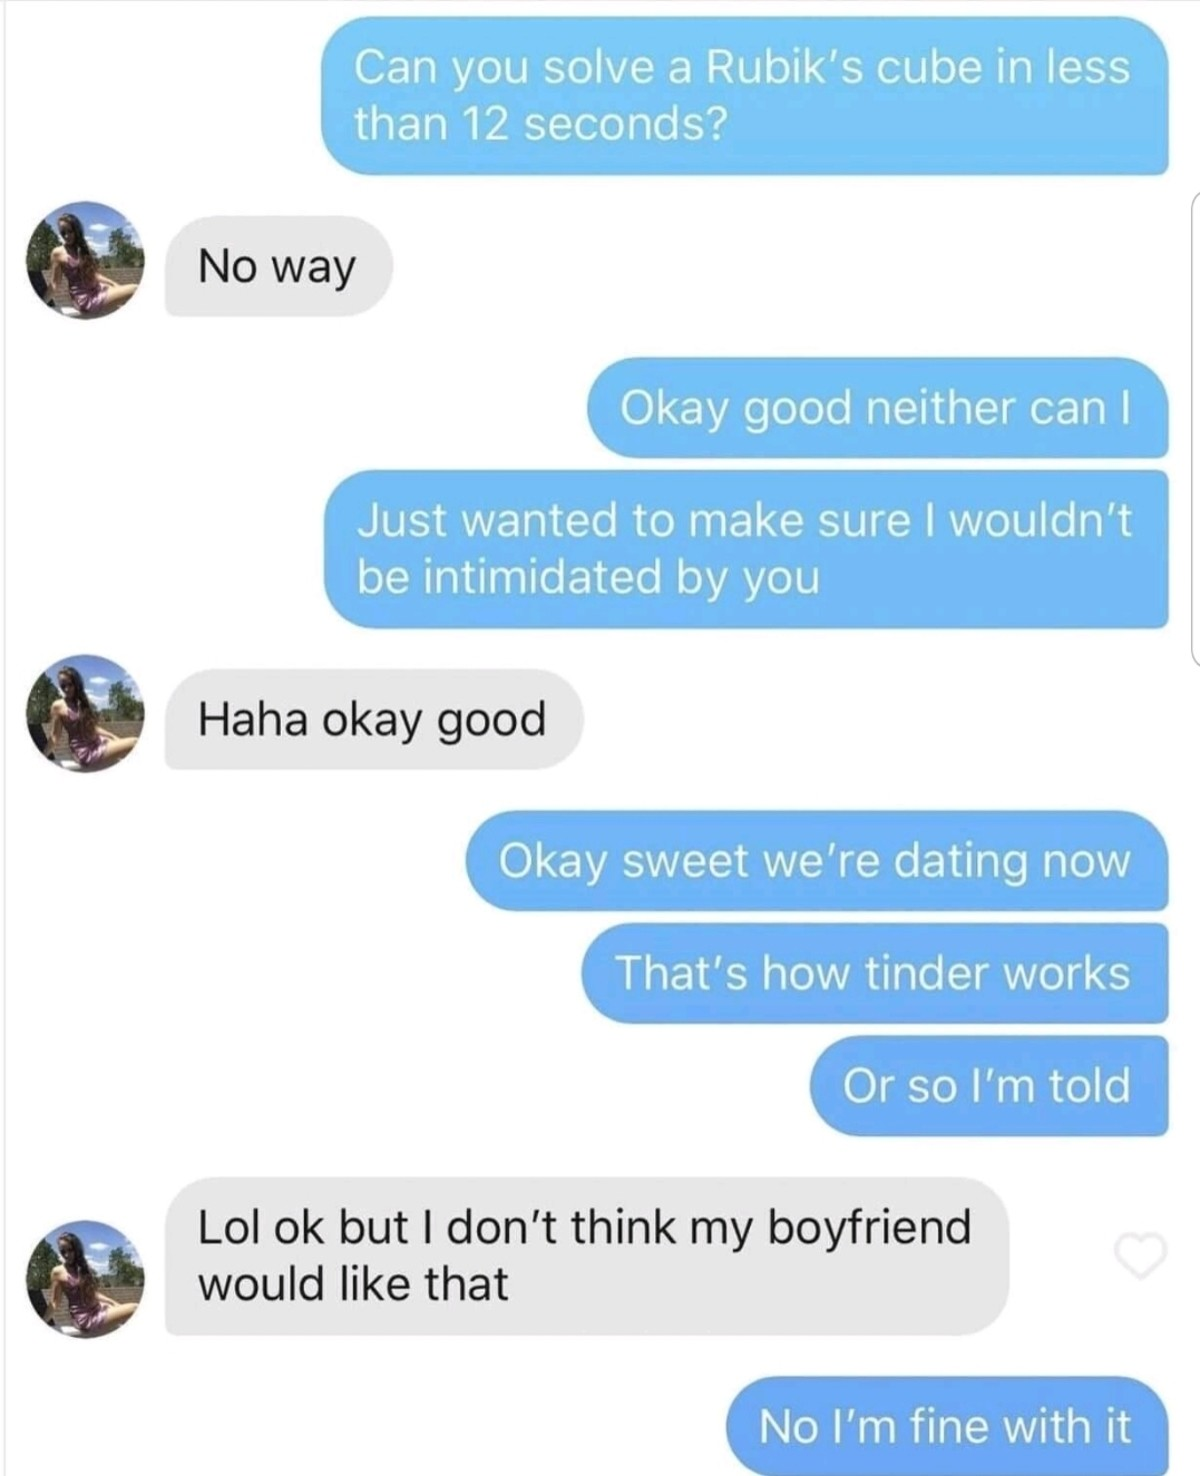 overconfident hateful Dugong. .. >In a relationship >On tinder Reaching peak levels of degeneracy here